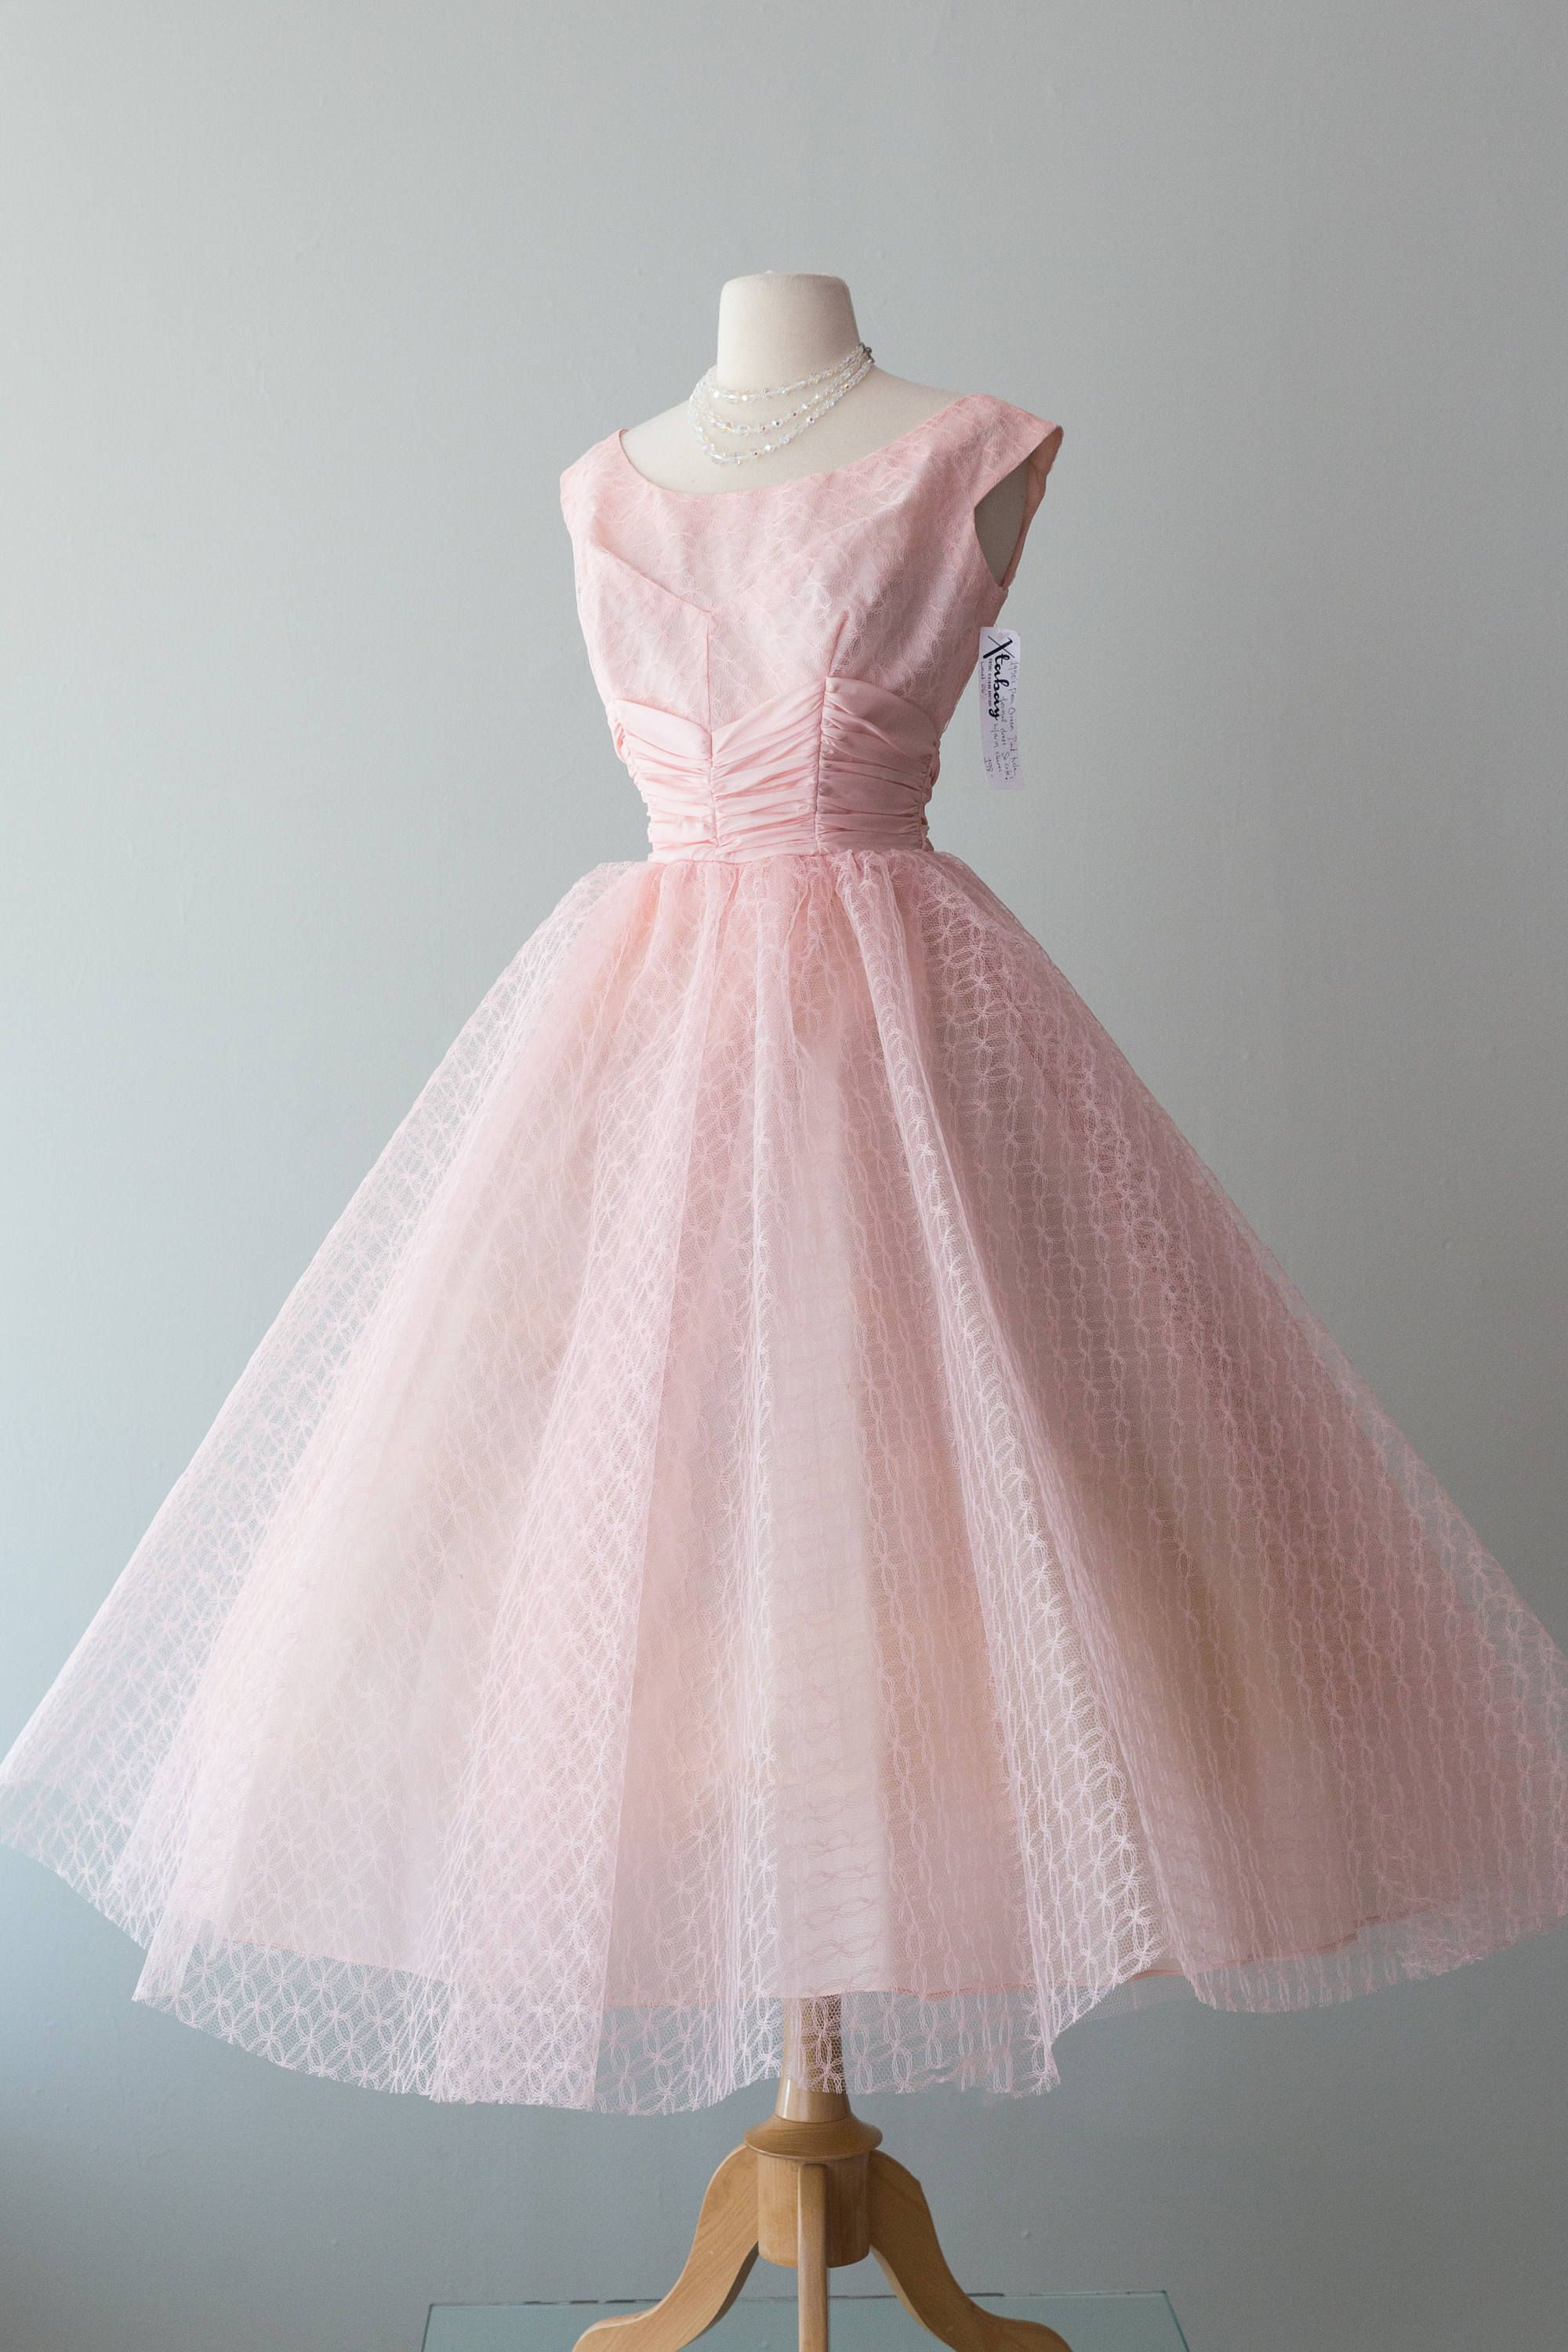 Vintage s dress s prom queen pink tulle party dress w